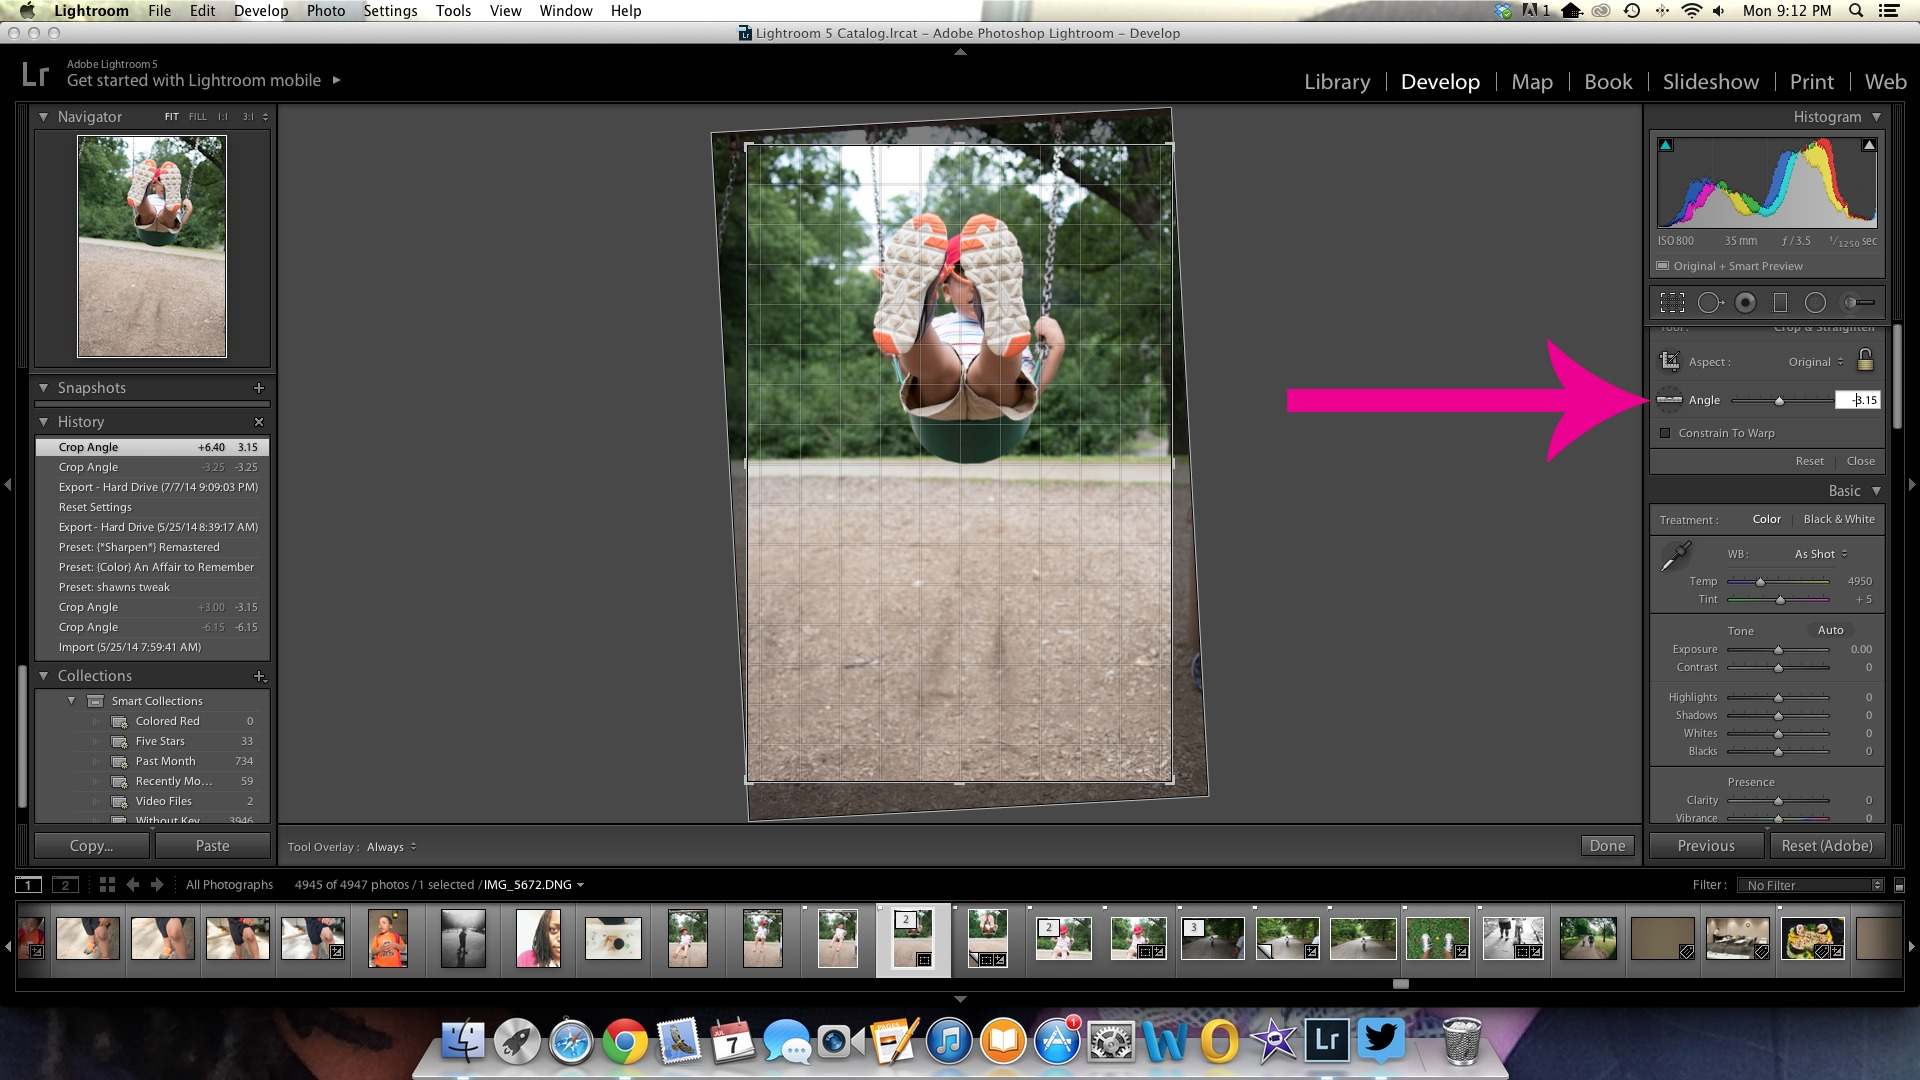 The Lightroom Straighten Tool is hidden in the crop overlay.